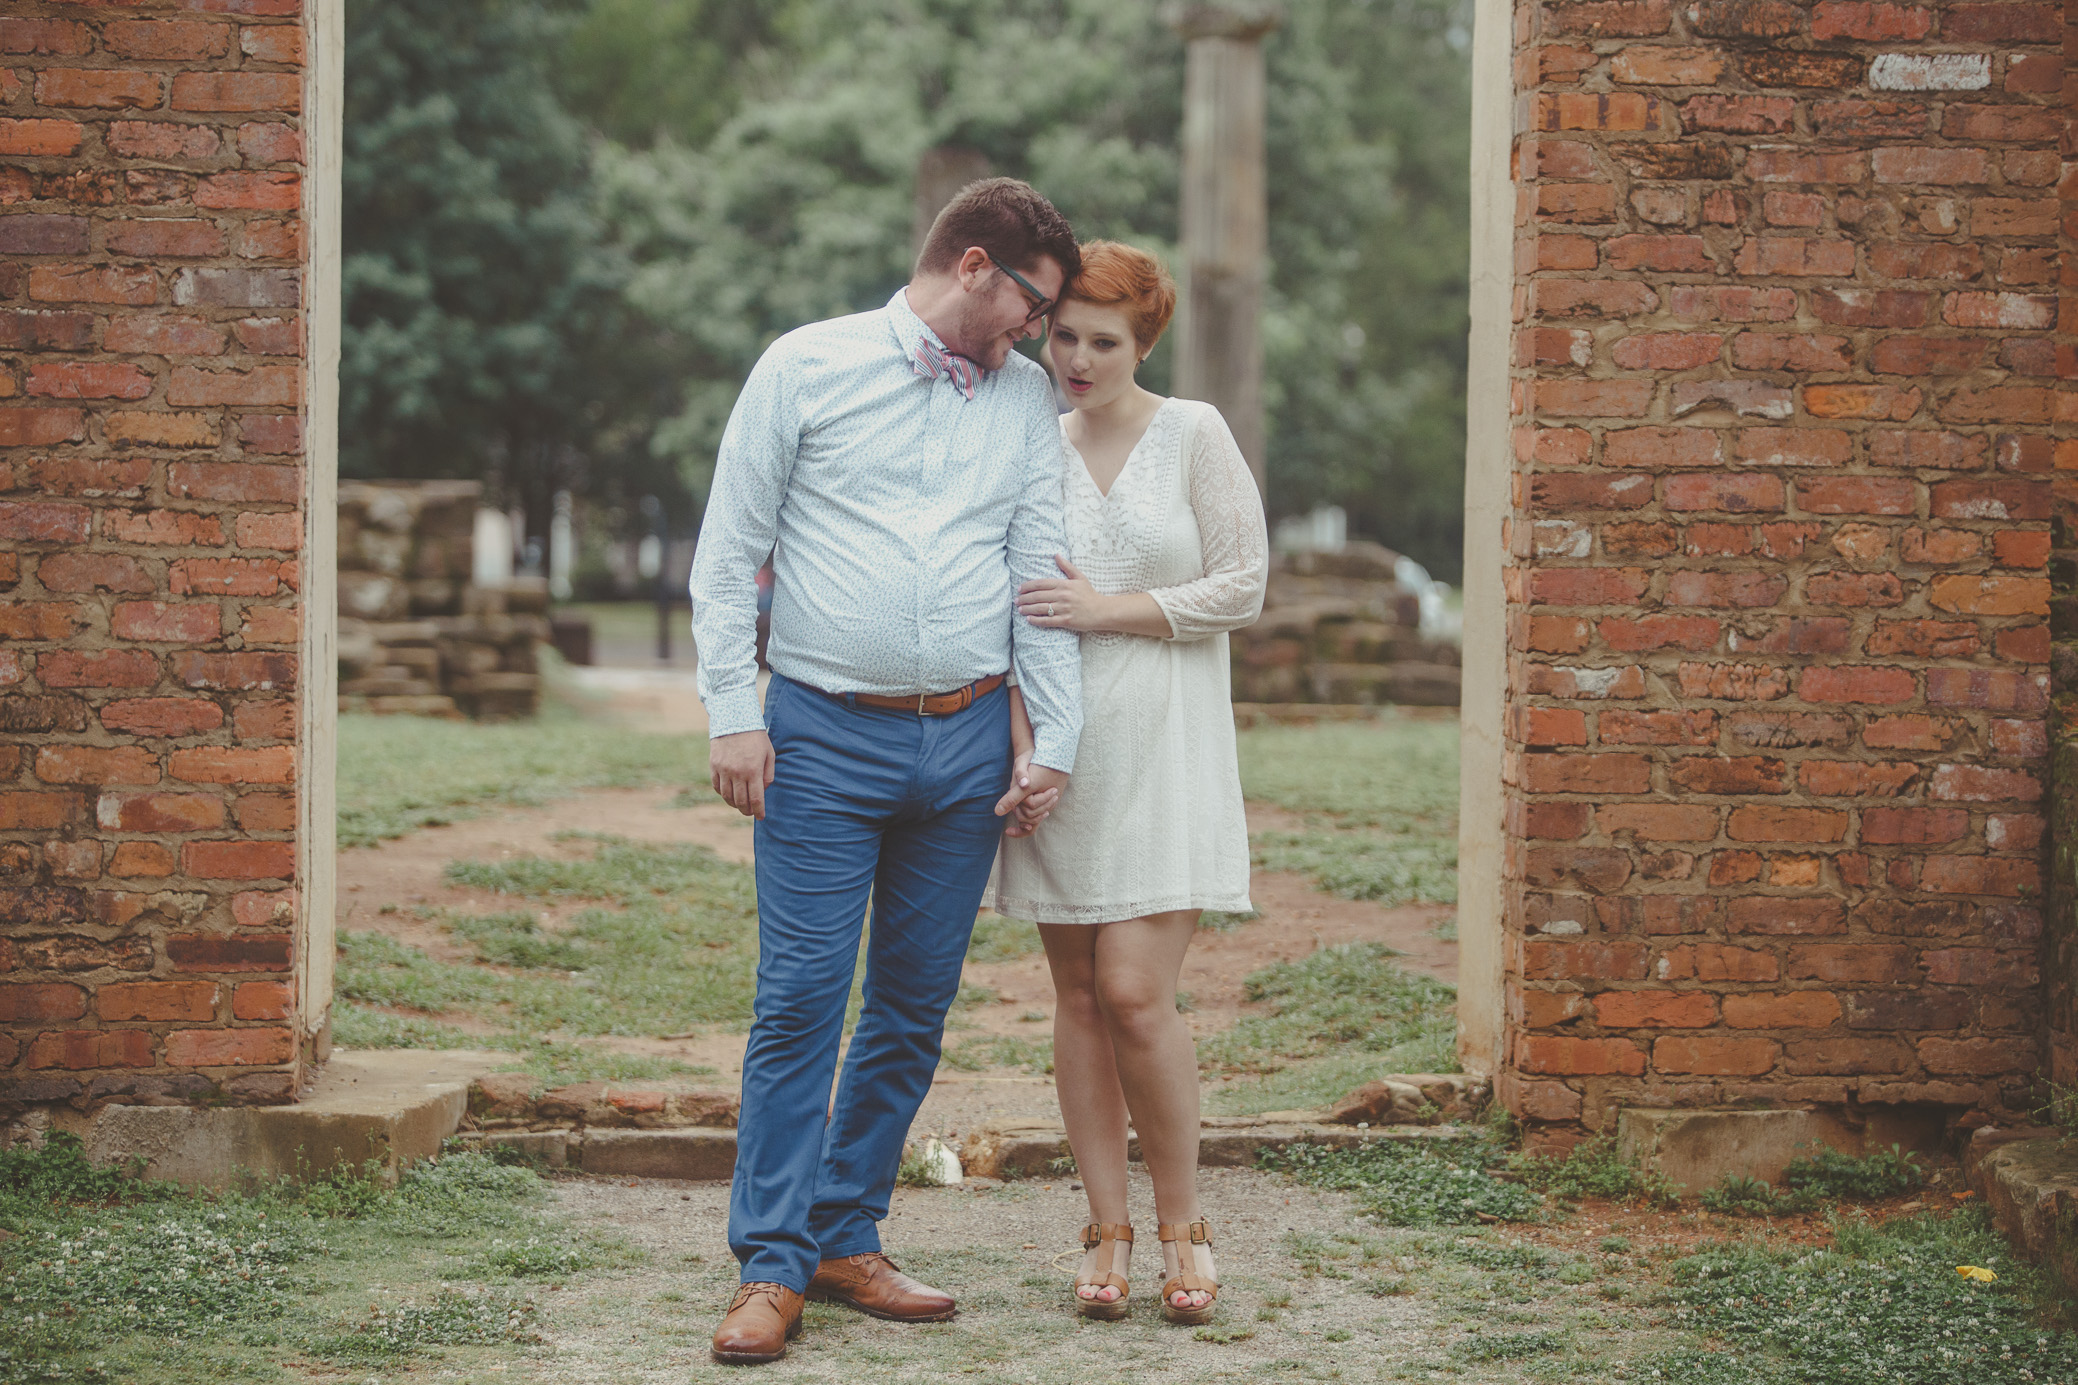 Engagement photography in Northport and Tuscaloosa, Alabama by David A. Smith of DSmithImages Wedding Photography, Portraits, and Events in Birmingham, Alabama